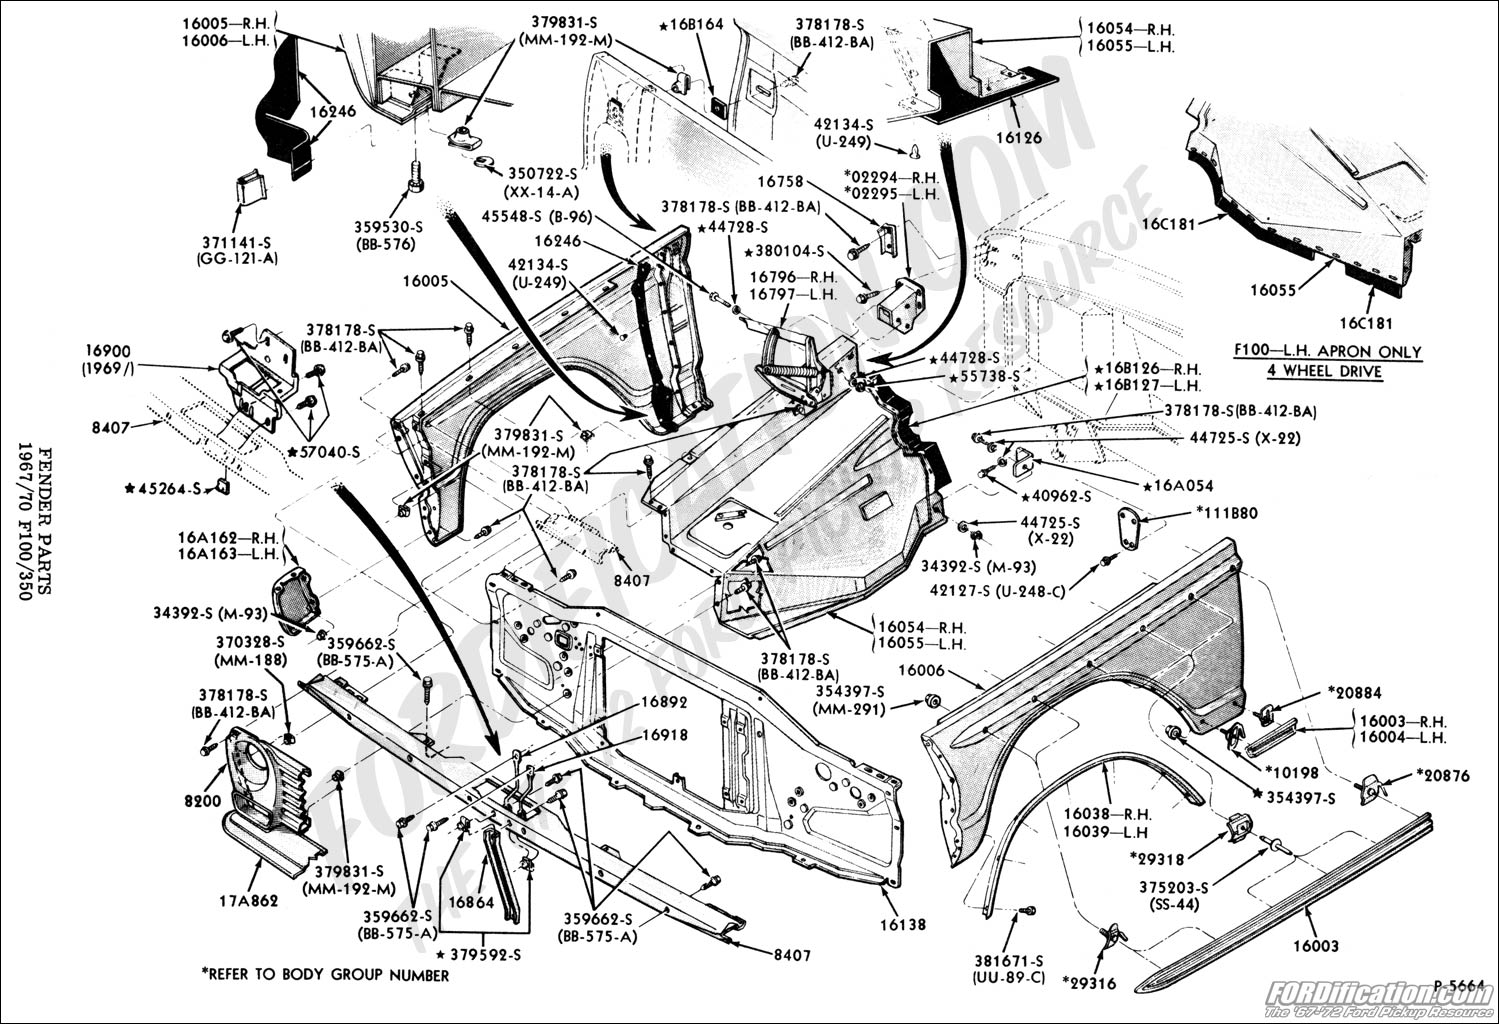 Wiring diagram 89 f250 the wiring diagram